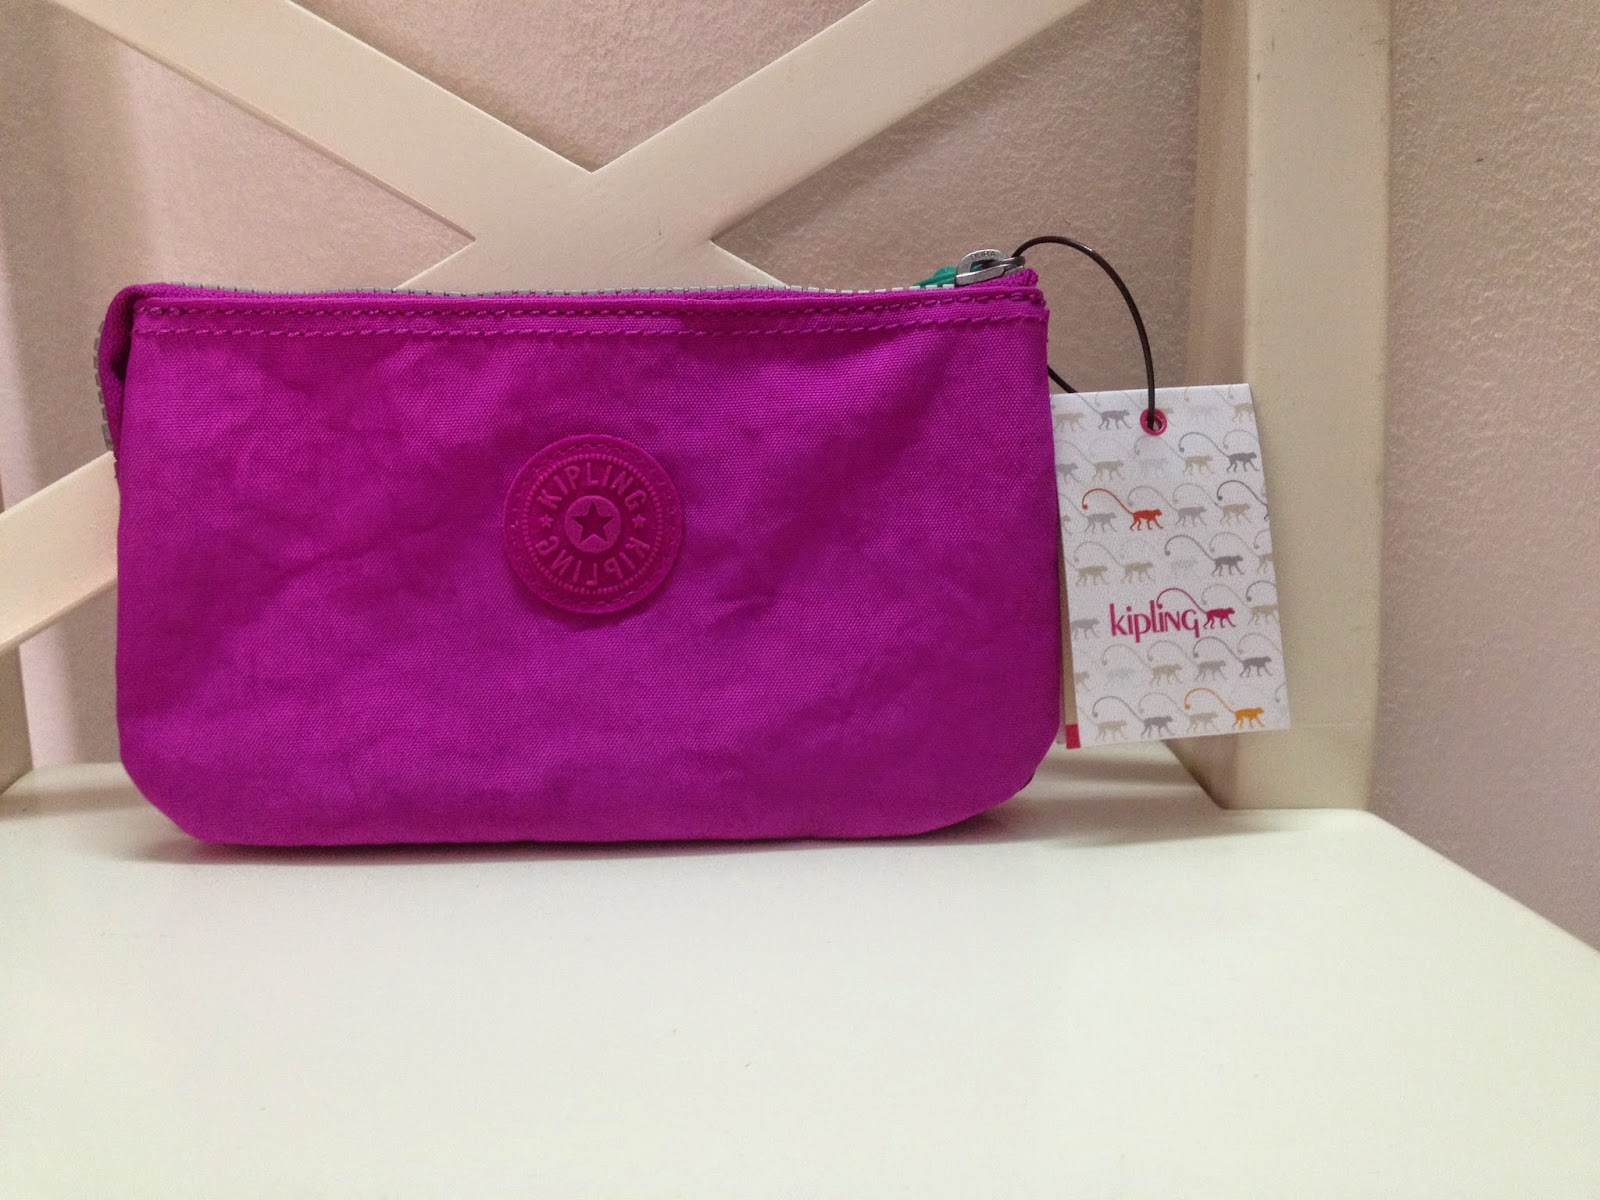 Kipling Creativity Letter Large Pouch